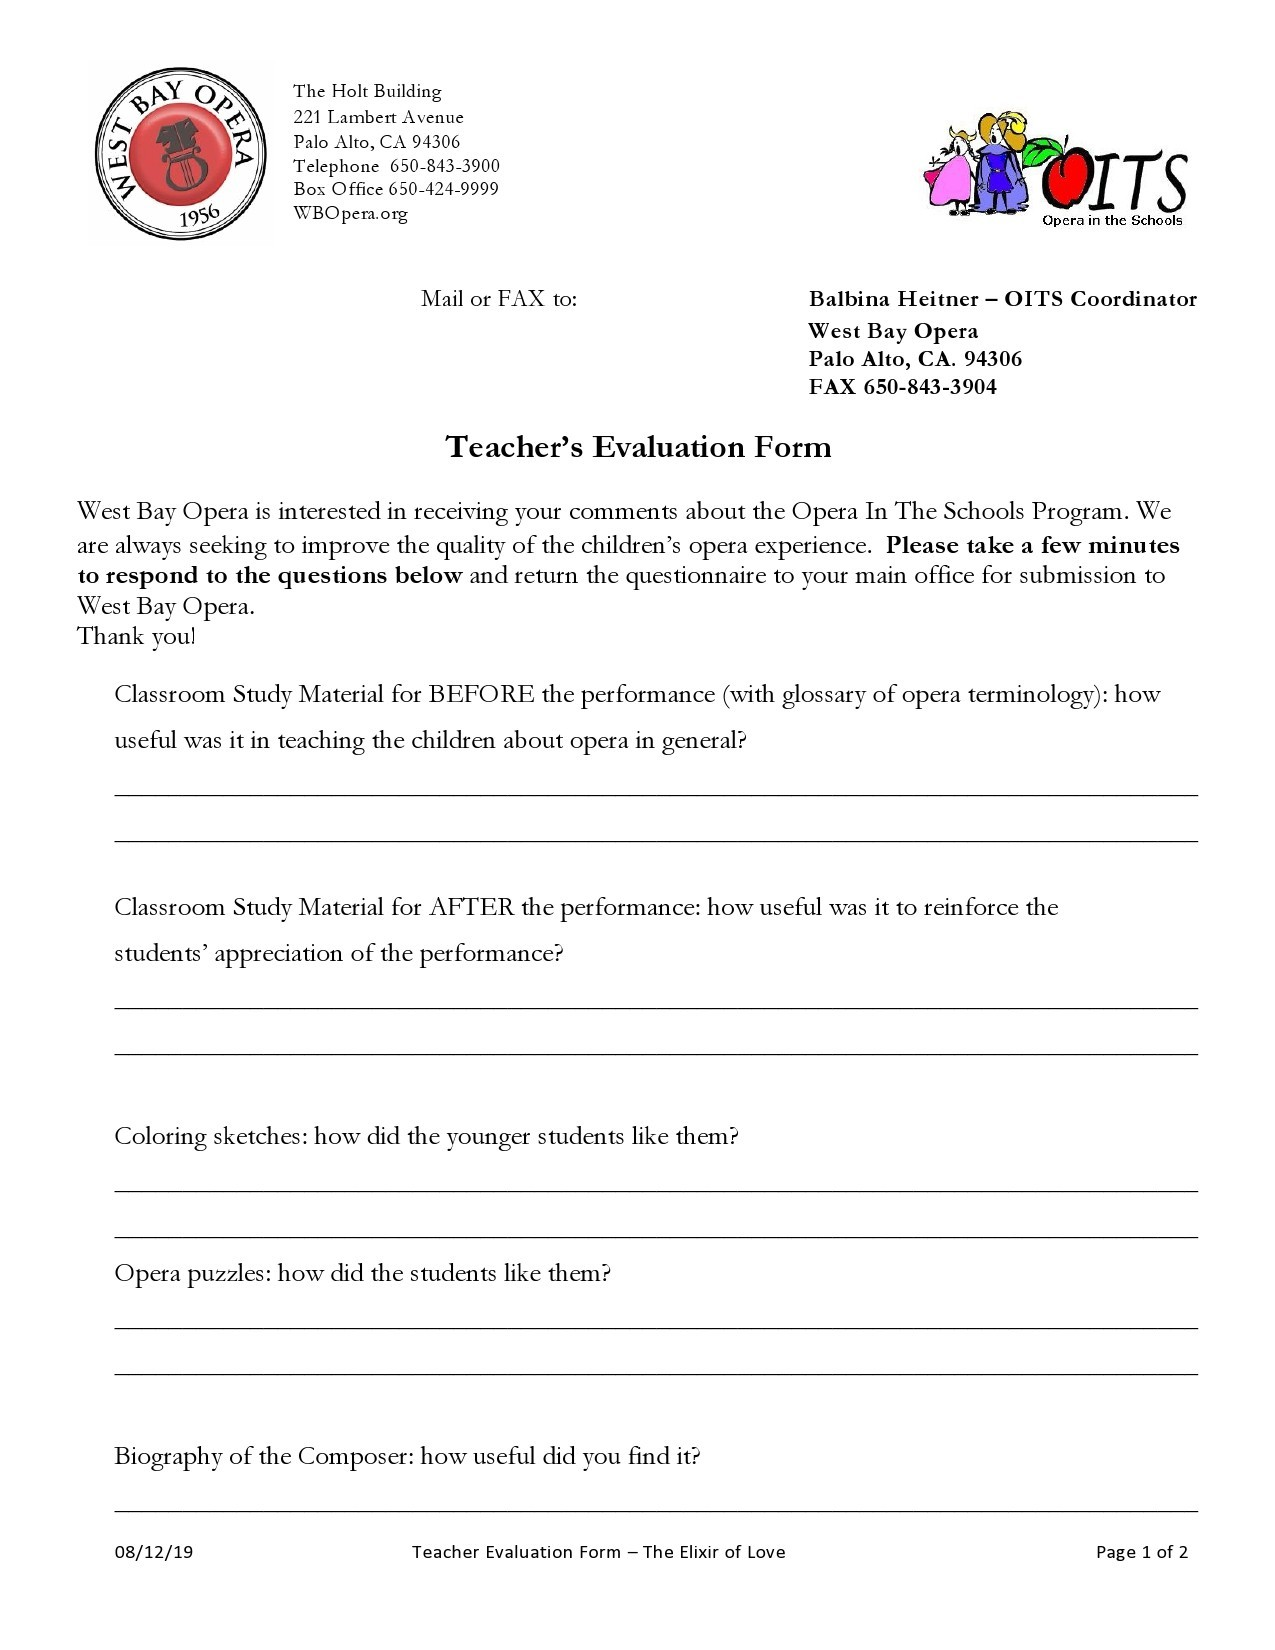 Free teacher evaluation form 31